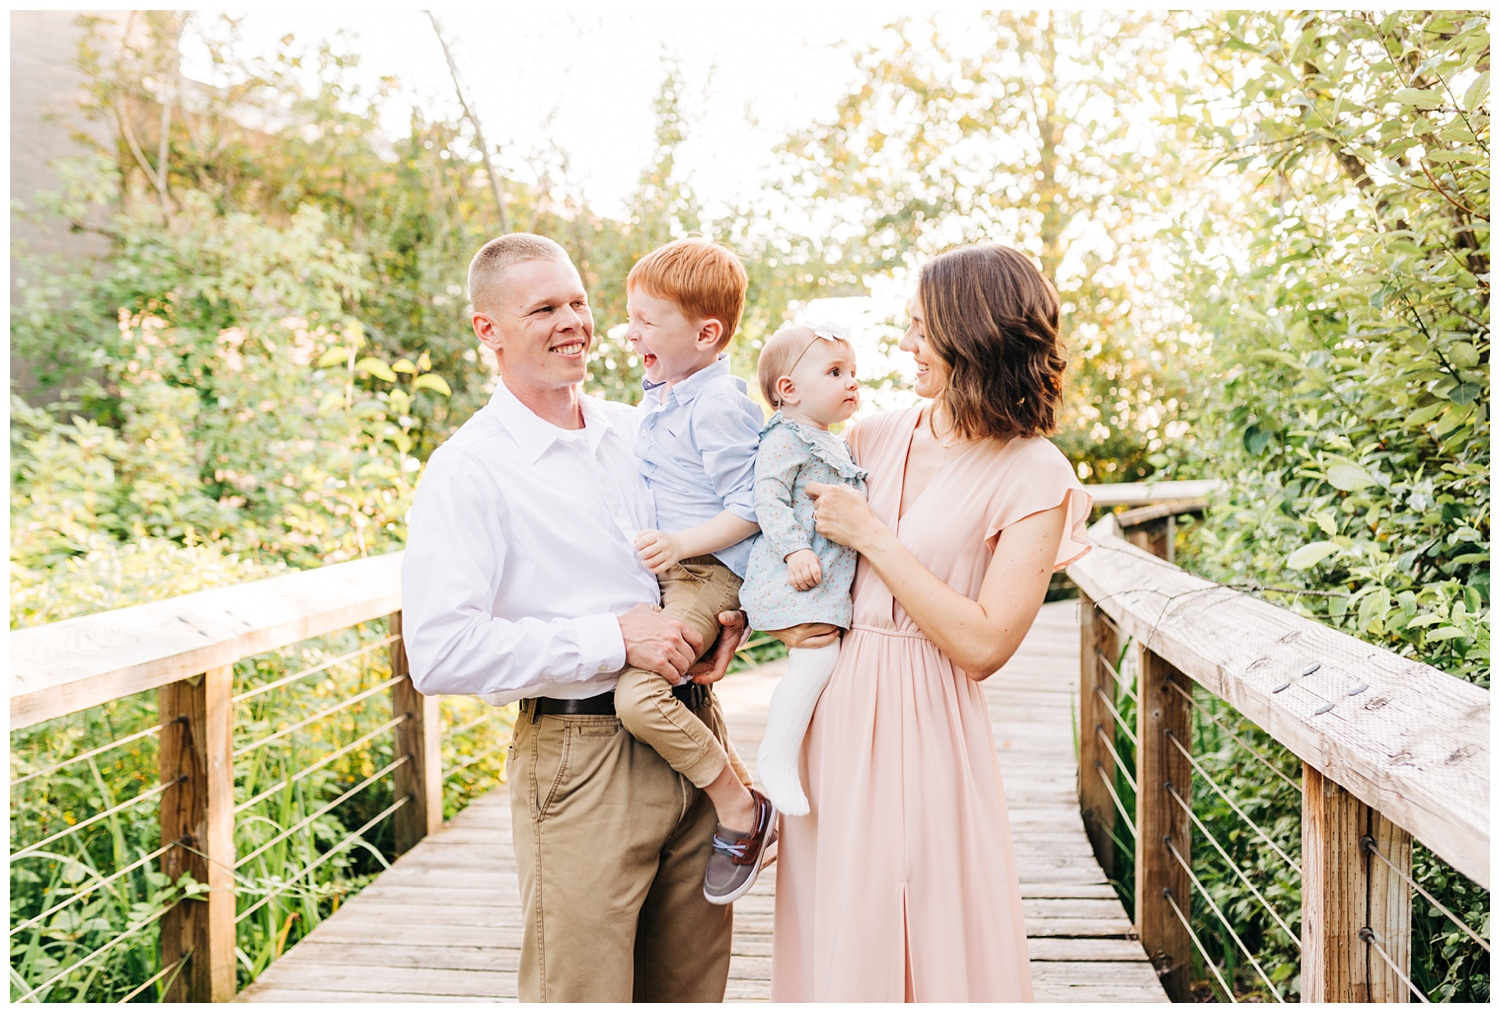 chamber's bay family session - Kay Mae Photography_002.jpg